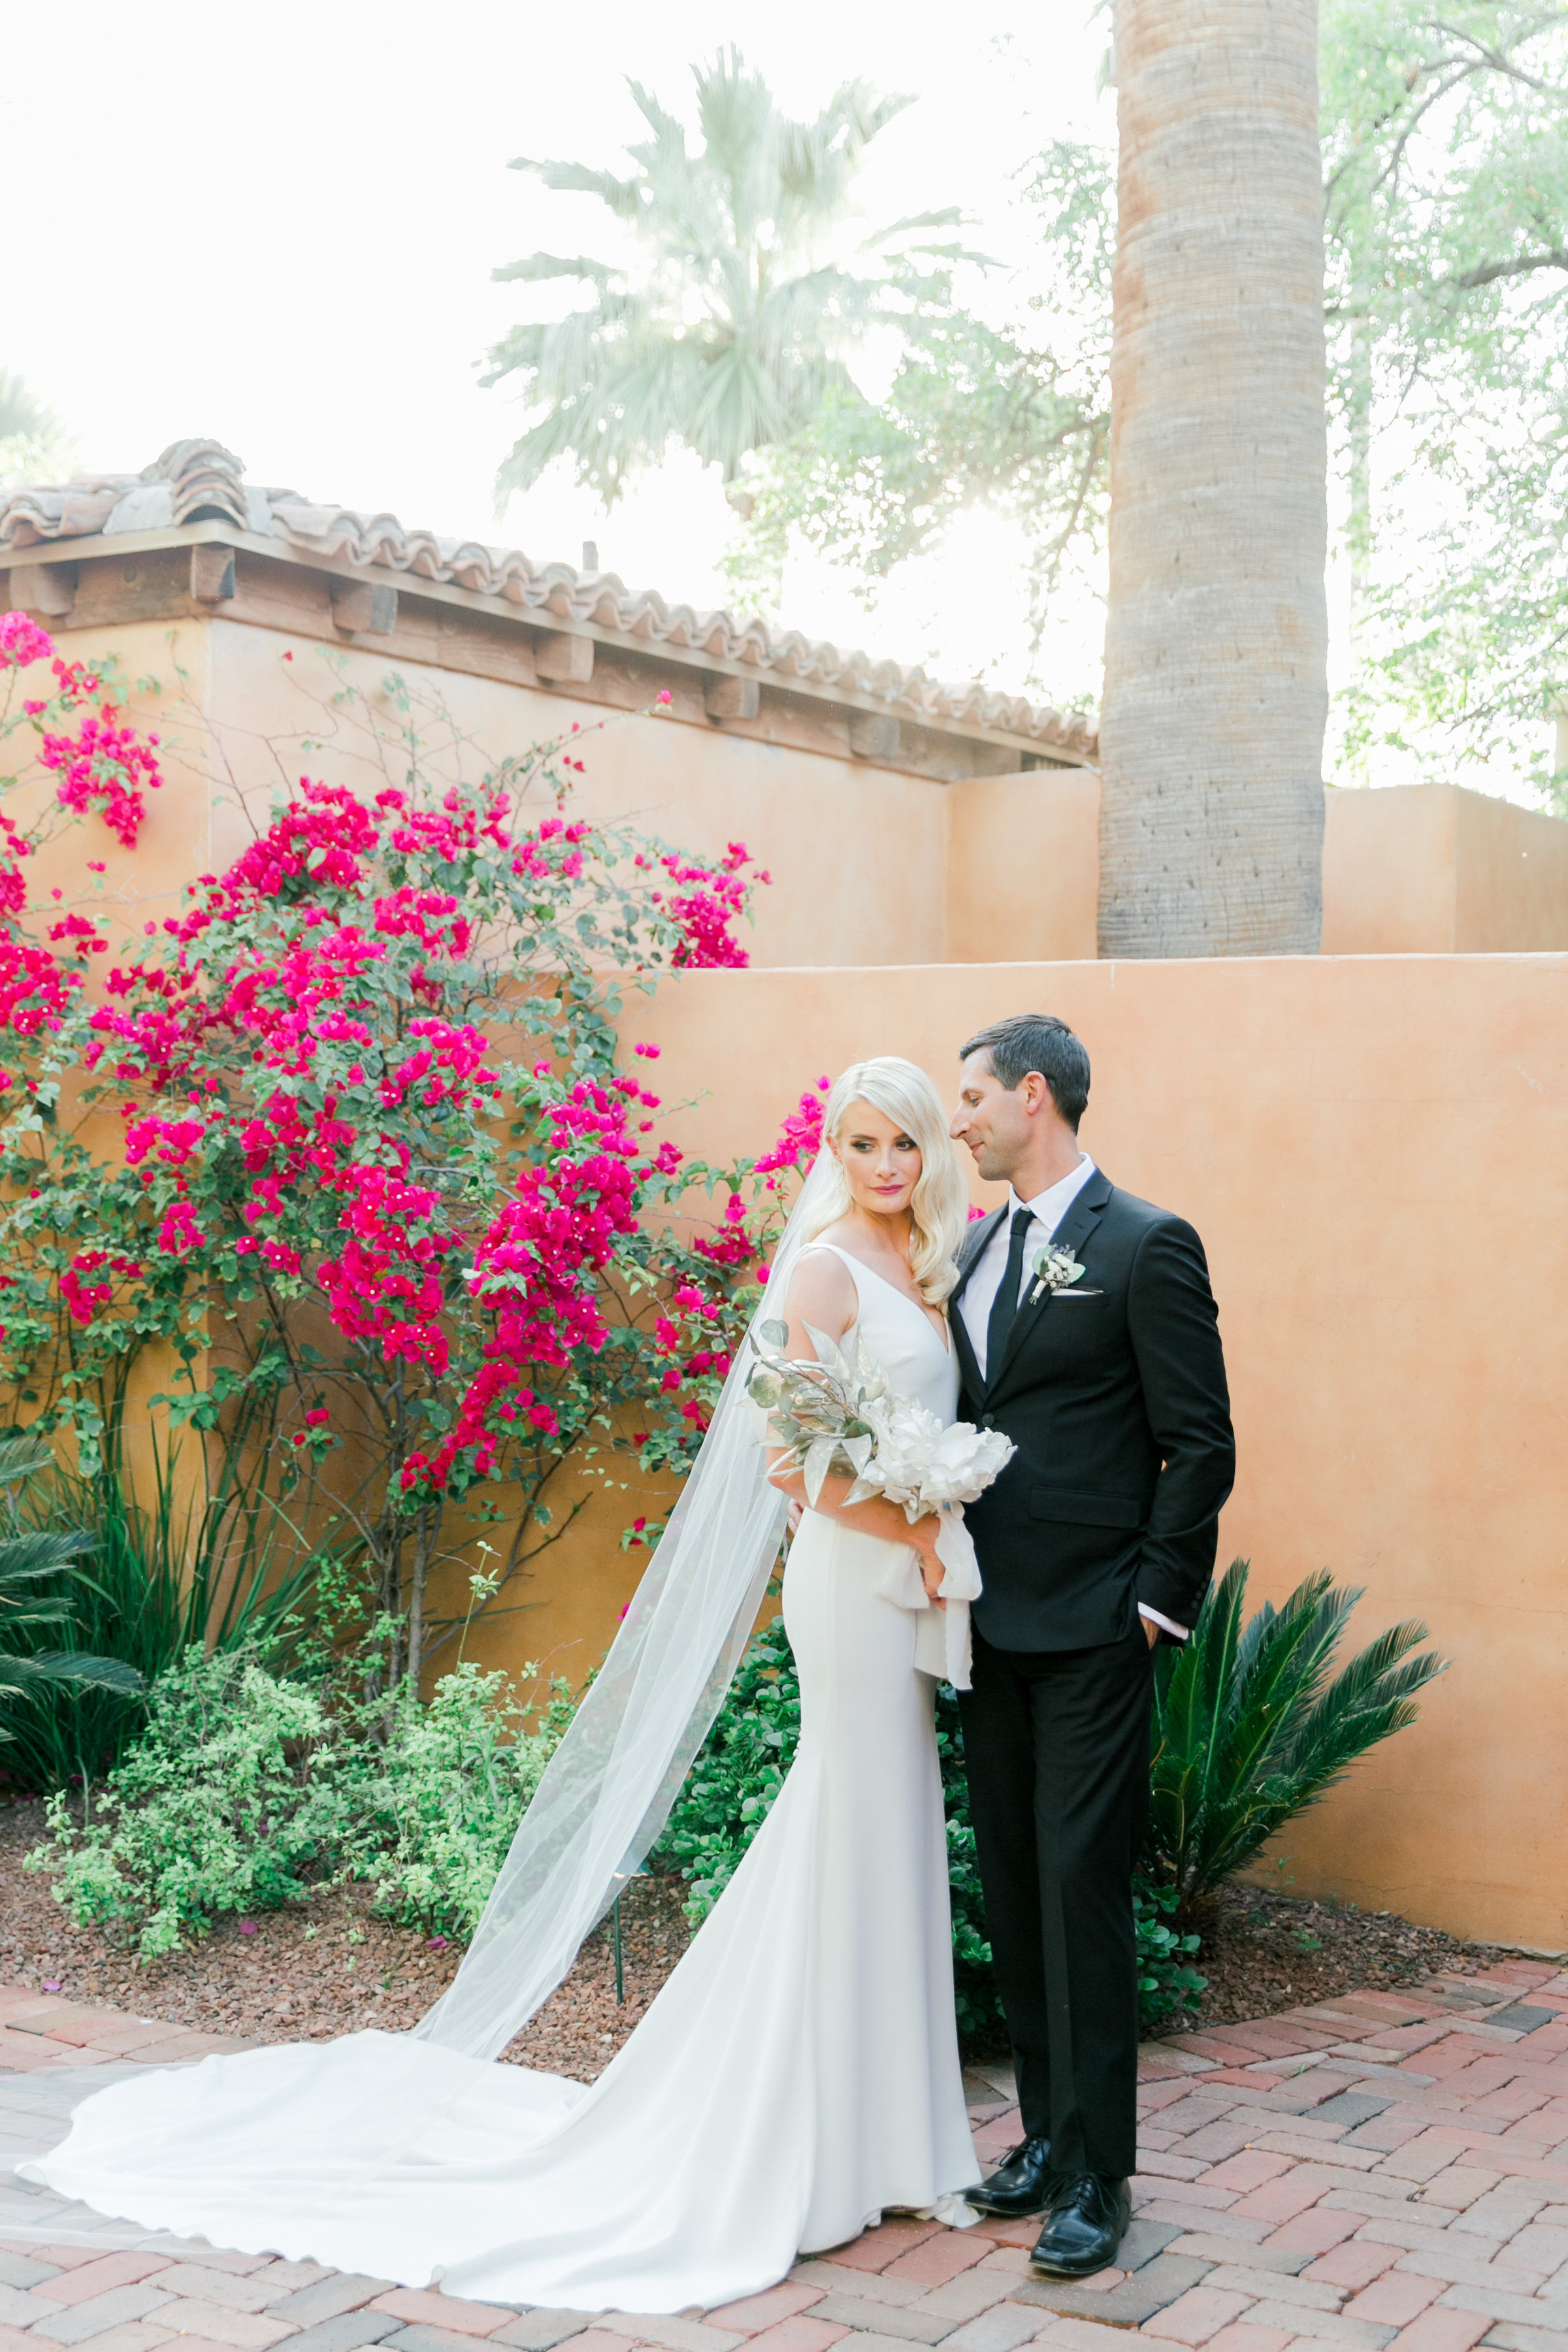 Karlie Colleen Photography - Arizona Wedding - Royal Palms Resort- Alex & Alex-112